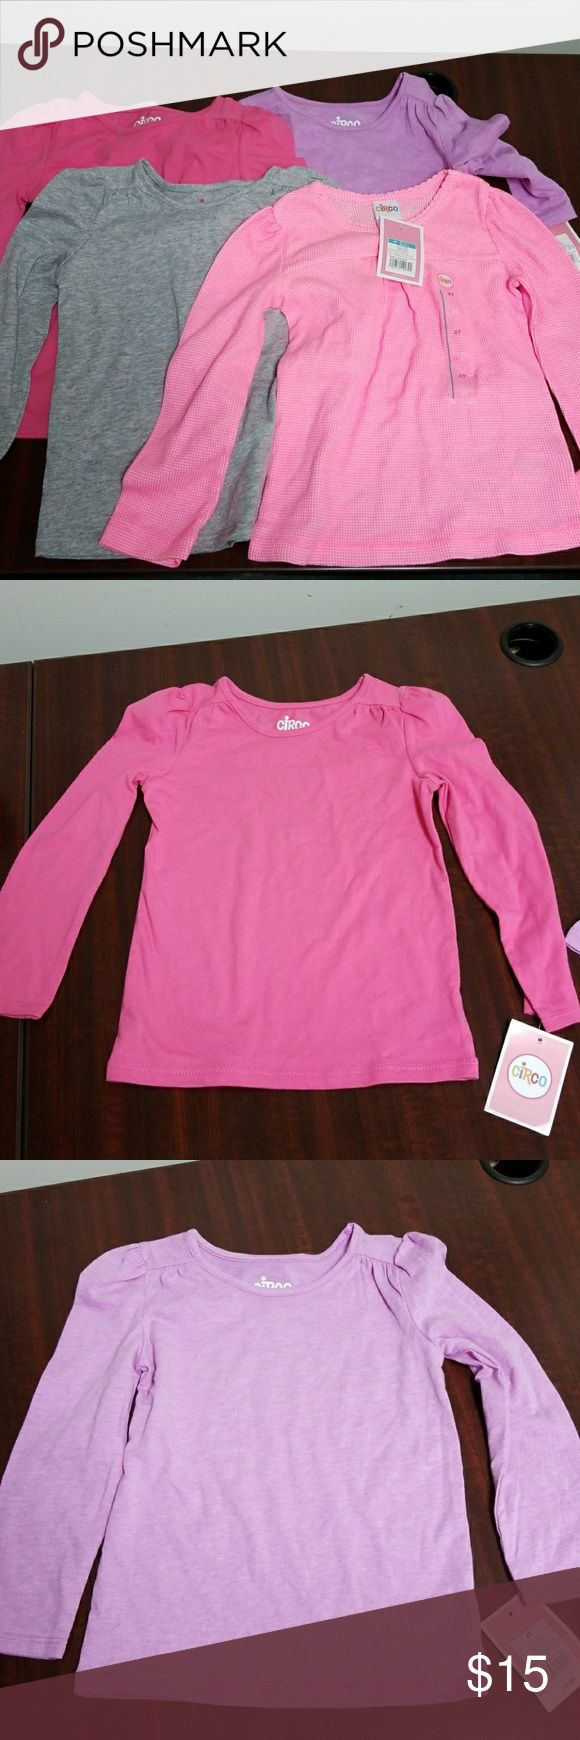 NWT Circo Girls long sleeve t-shirts 4T NWT Circo Girls long sleeve t-shirts 4T. Three are regular and one is a thermal. This listing is for all 4 shirts. Two pink, one gray and one lavender. Circo Shirts & Tops Tees - Long Sleeve